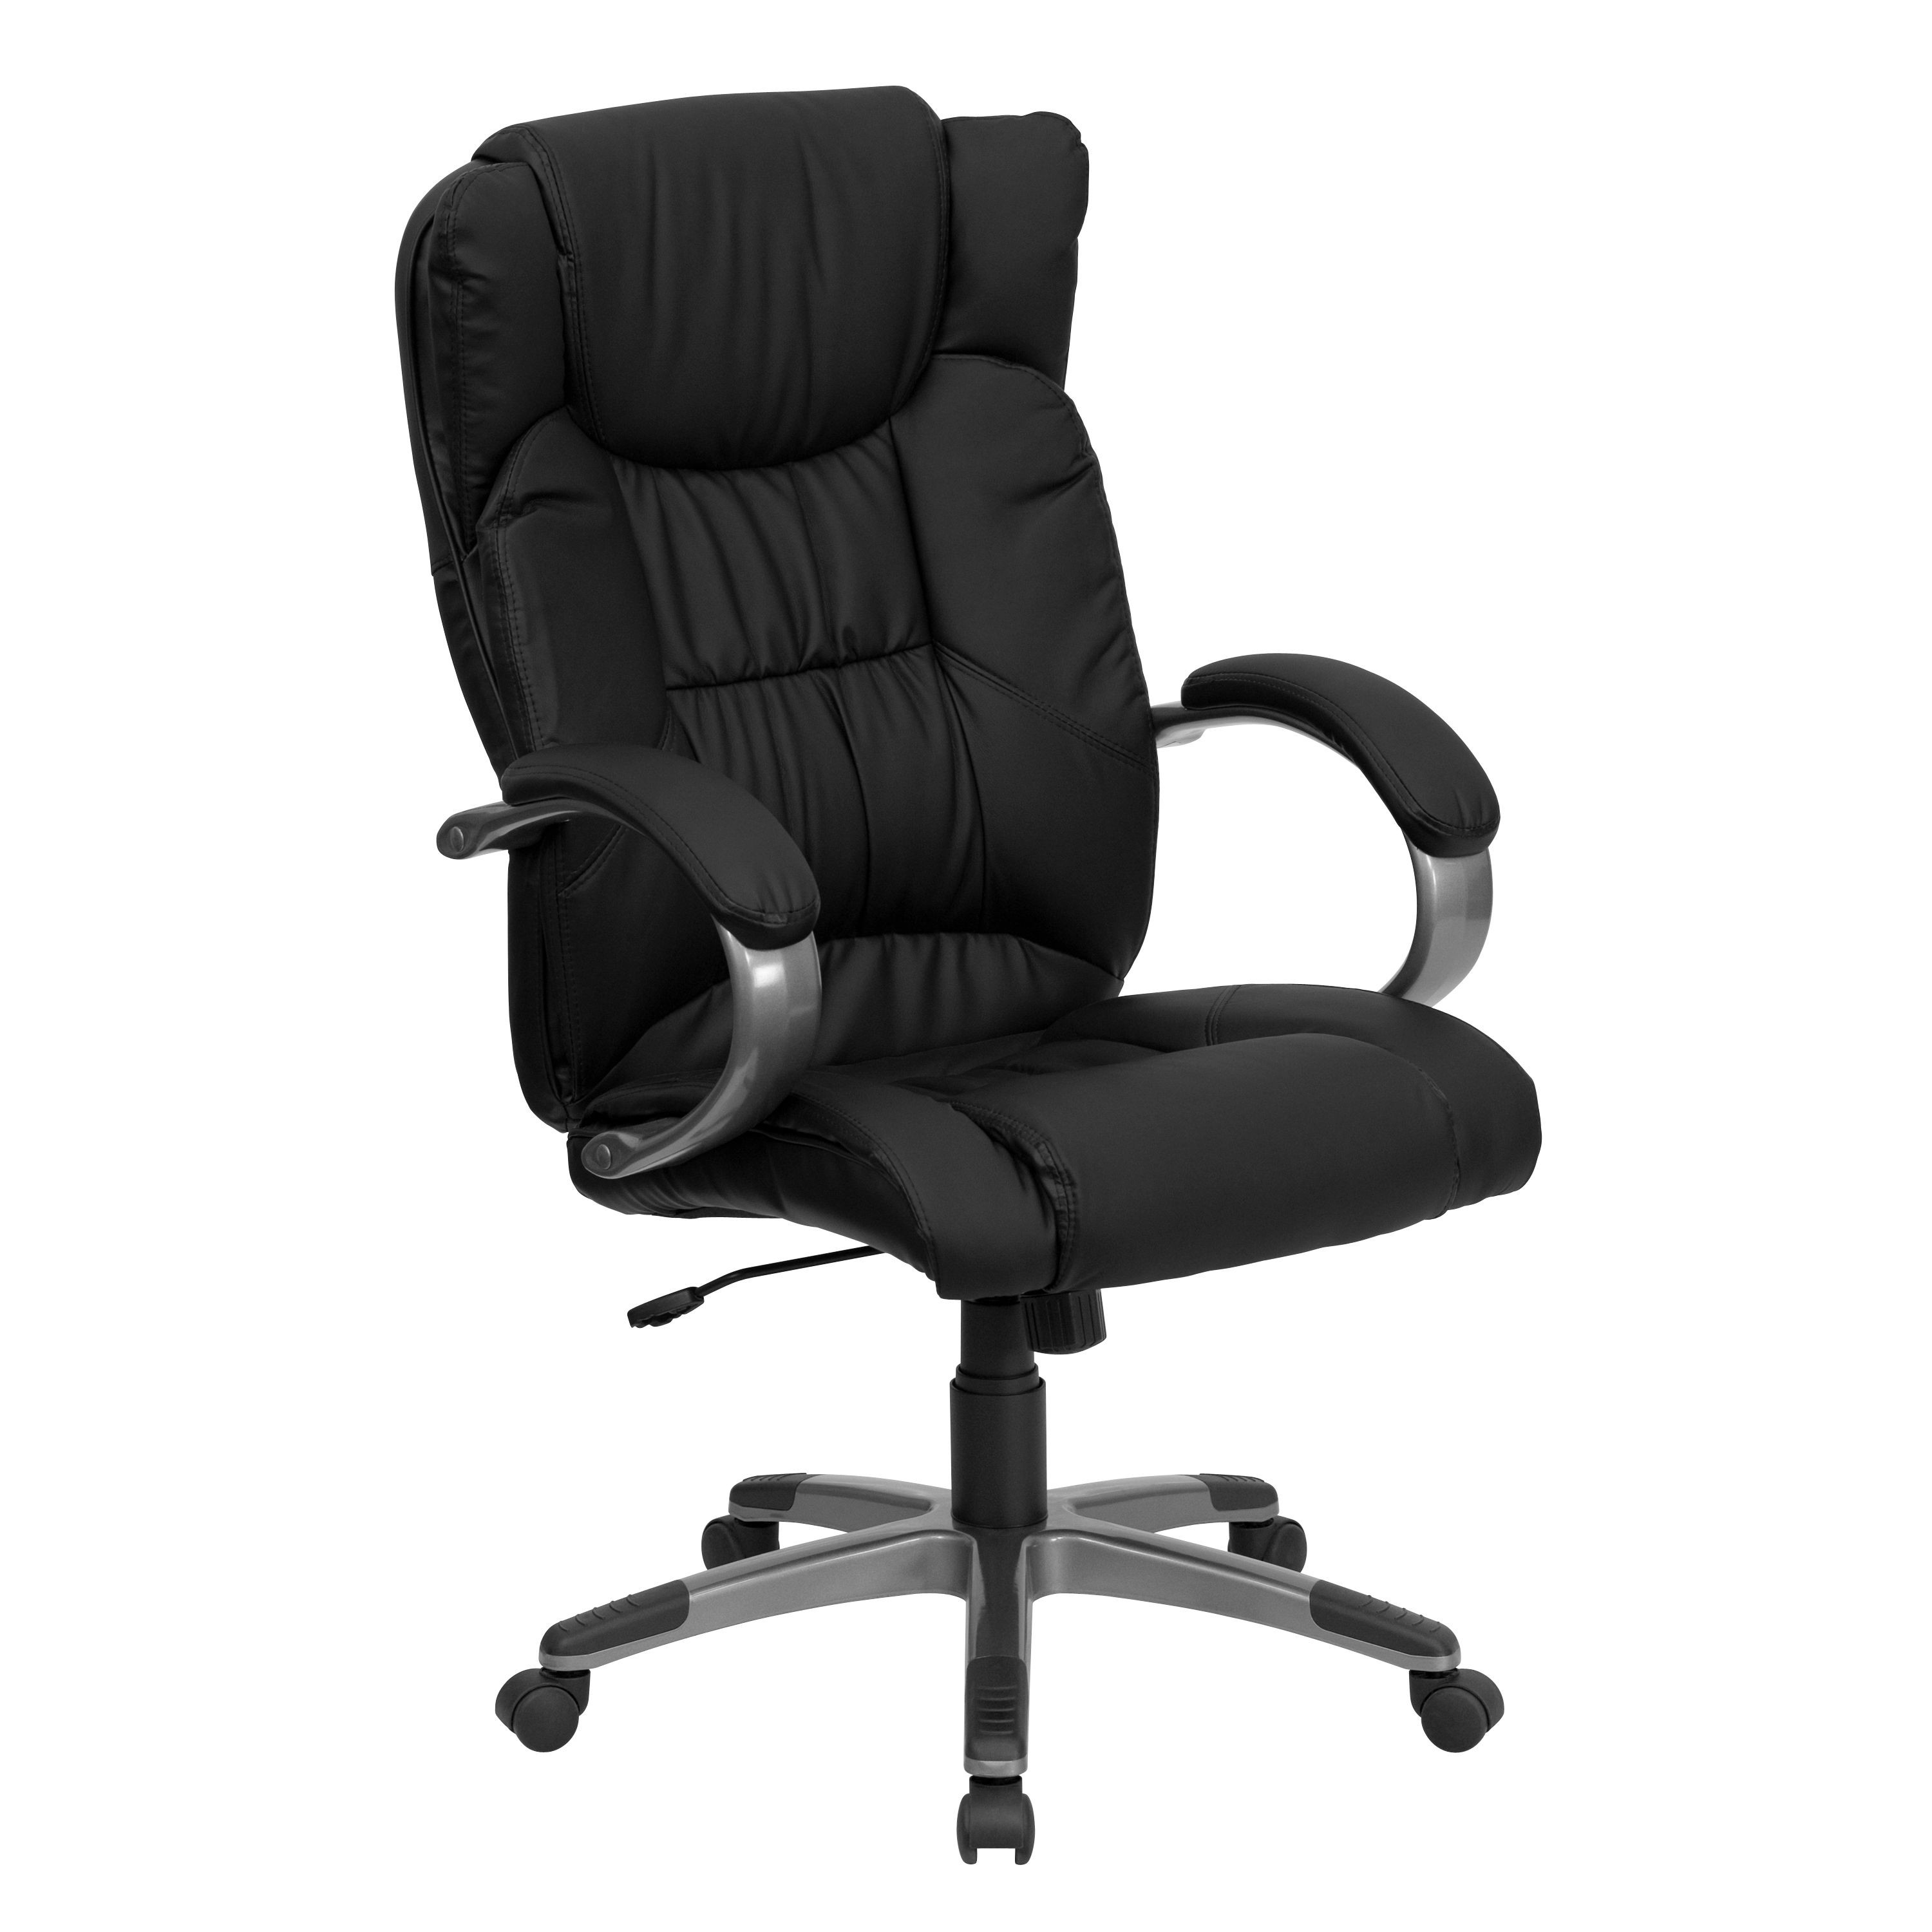 Flash Furniture BT-9088-BK-GG Black Leather High Back Executive Office Chair with arm rests